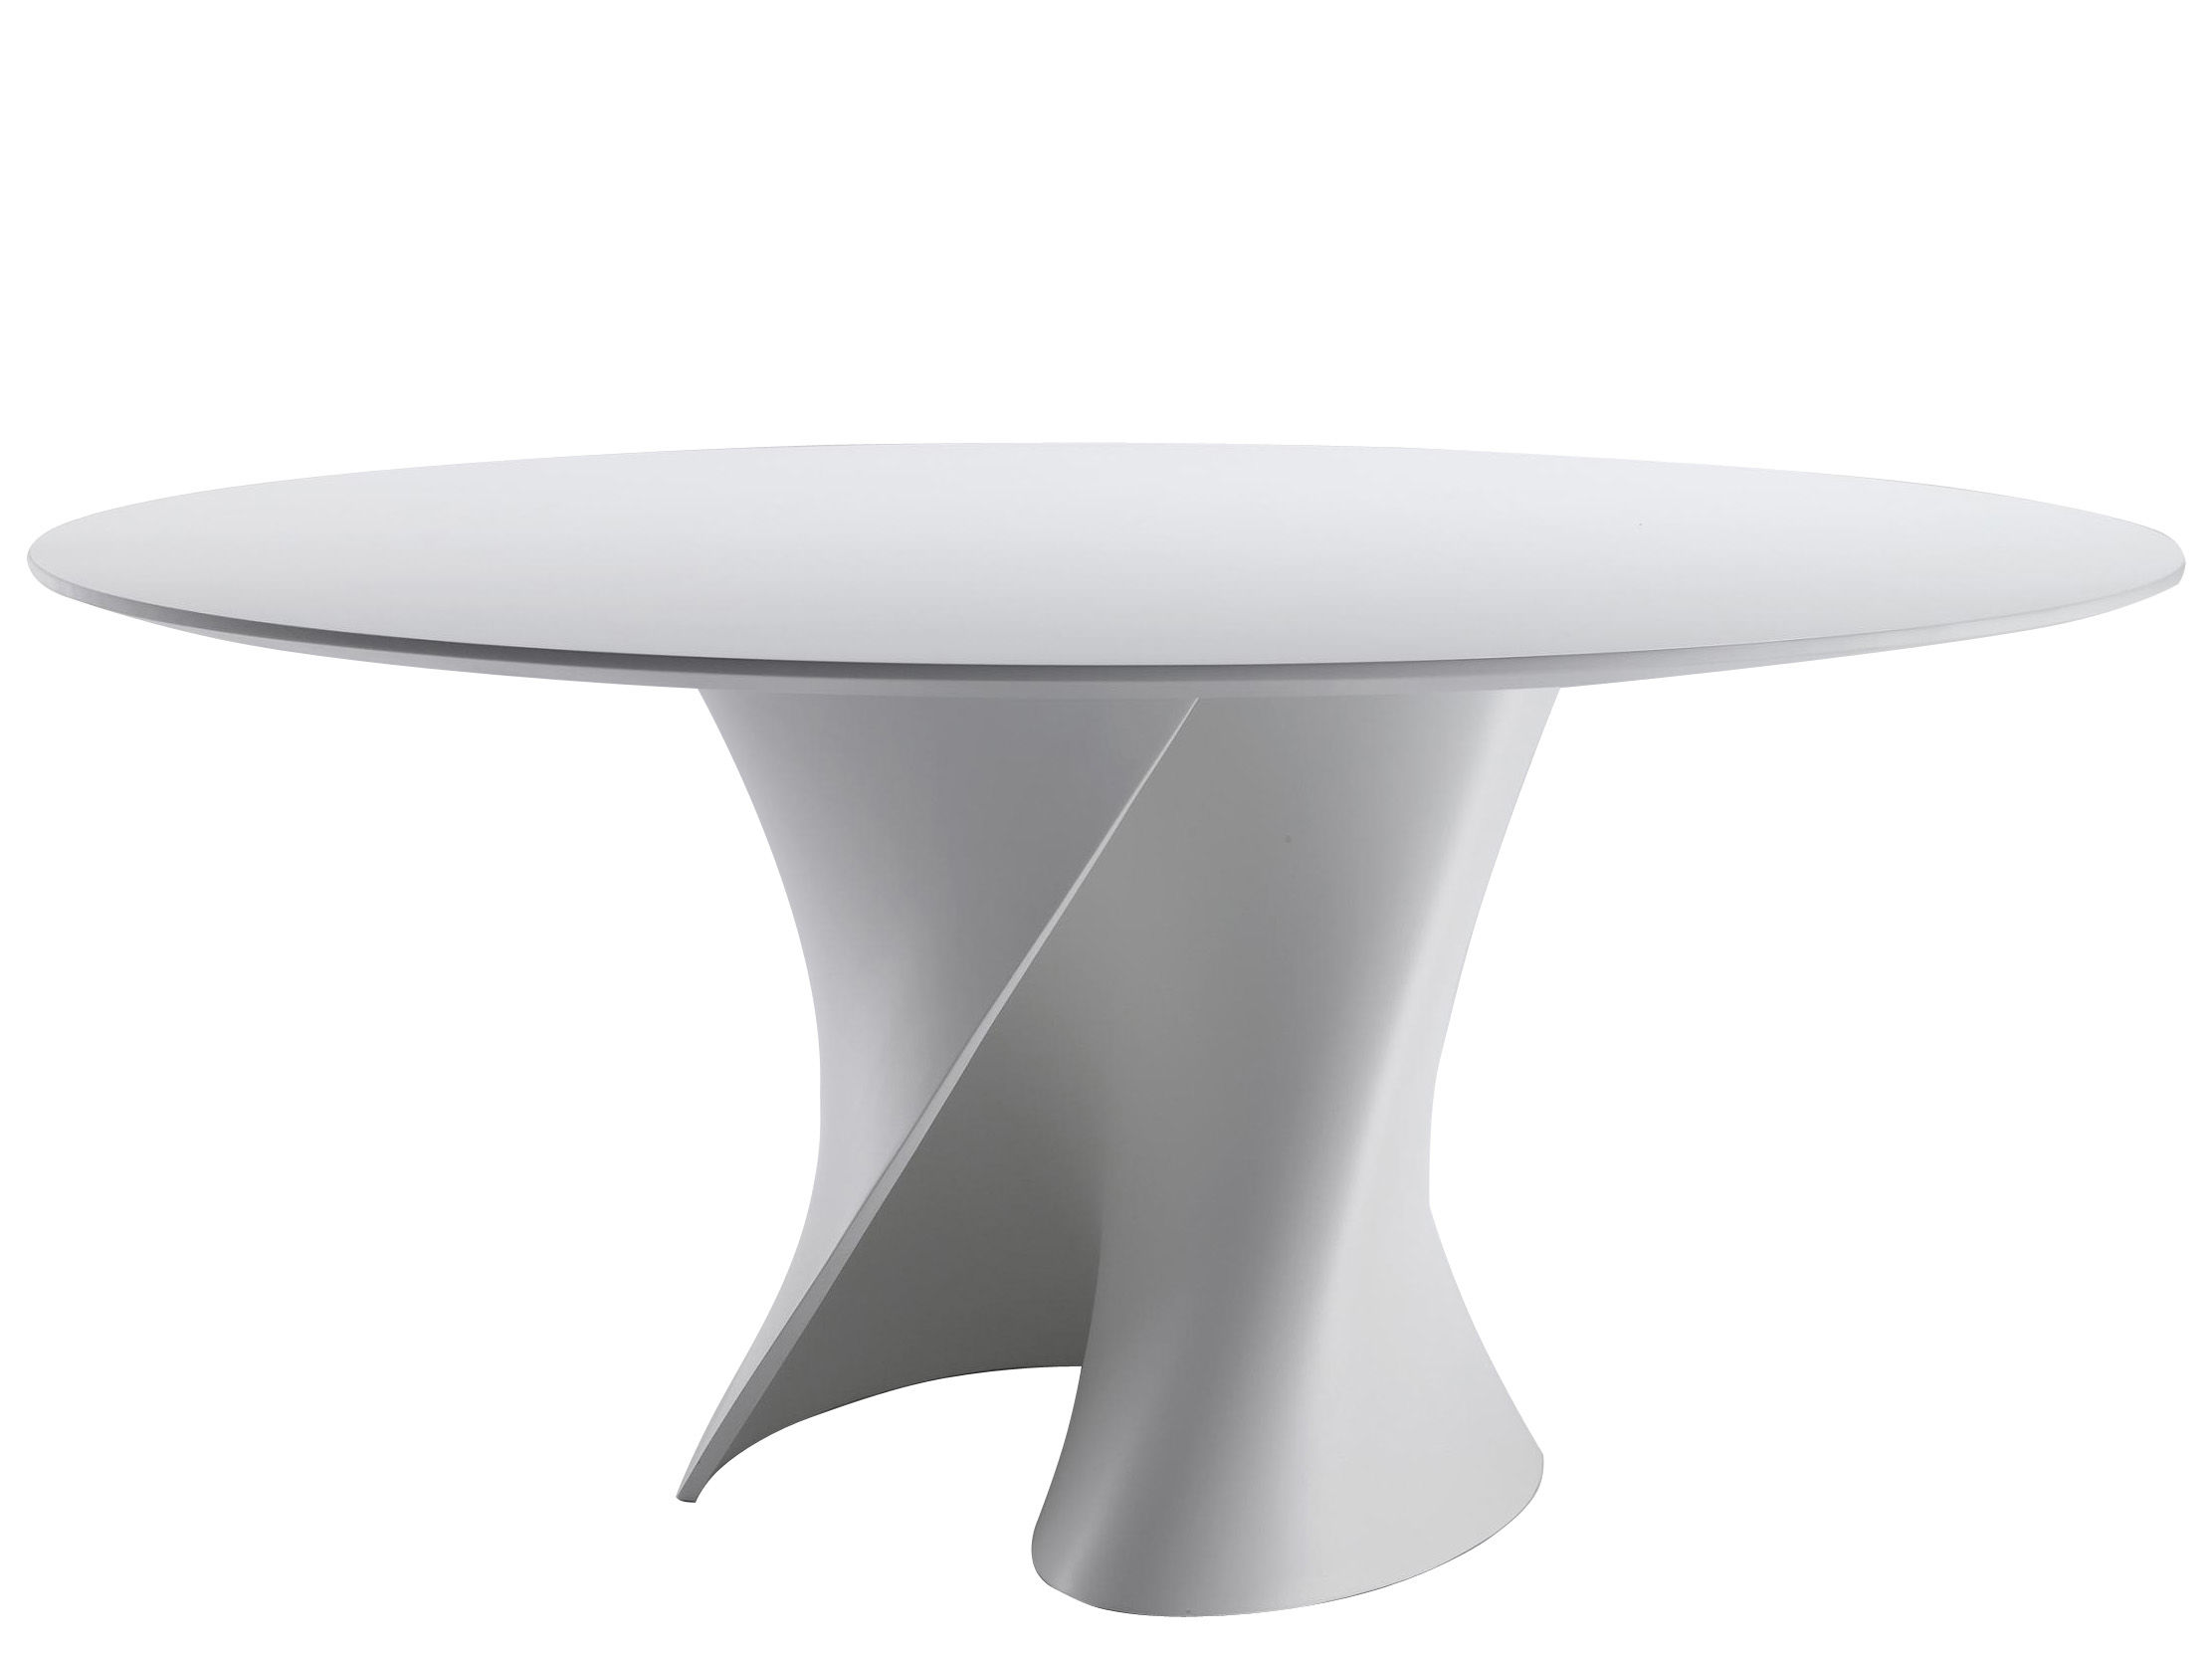 Trends - Take your seat! - S Round table - Ø 140 cm by MDF Italia - White - Cristalplant